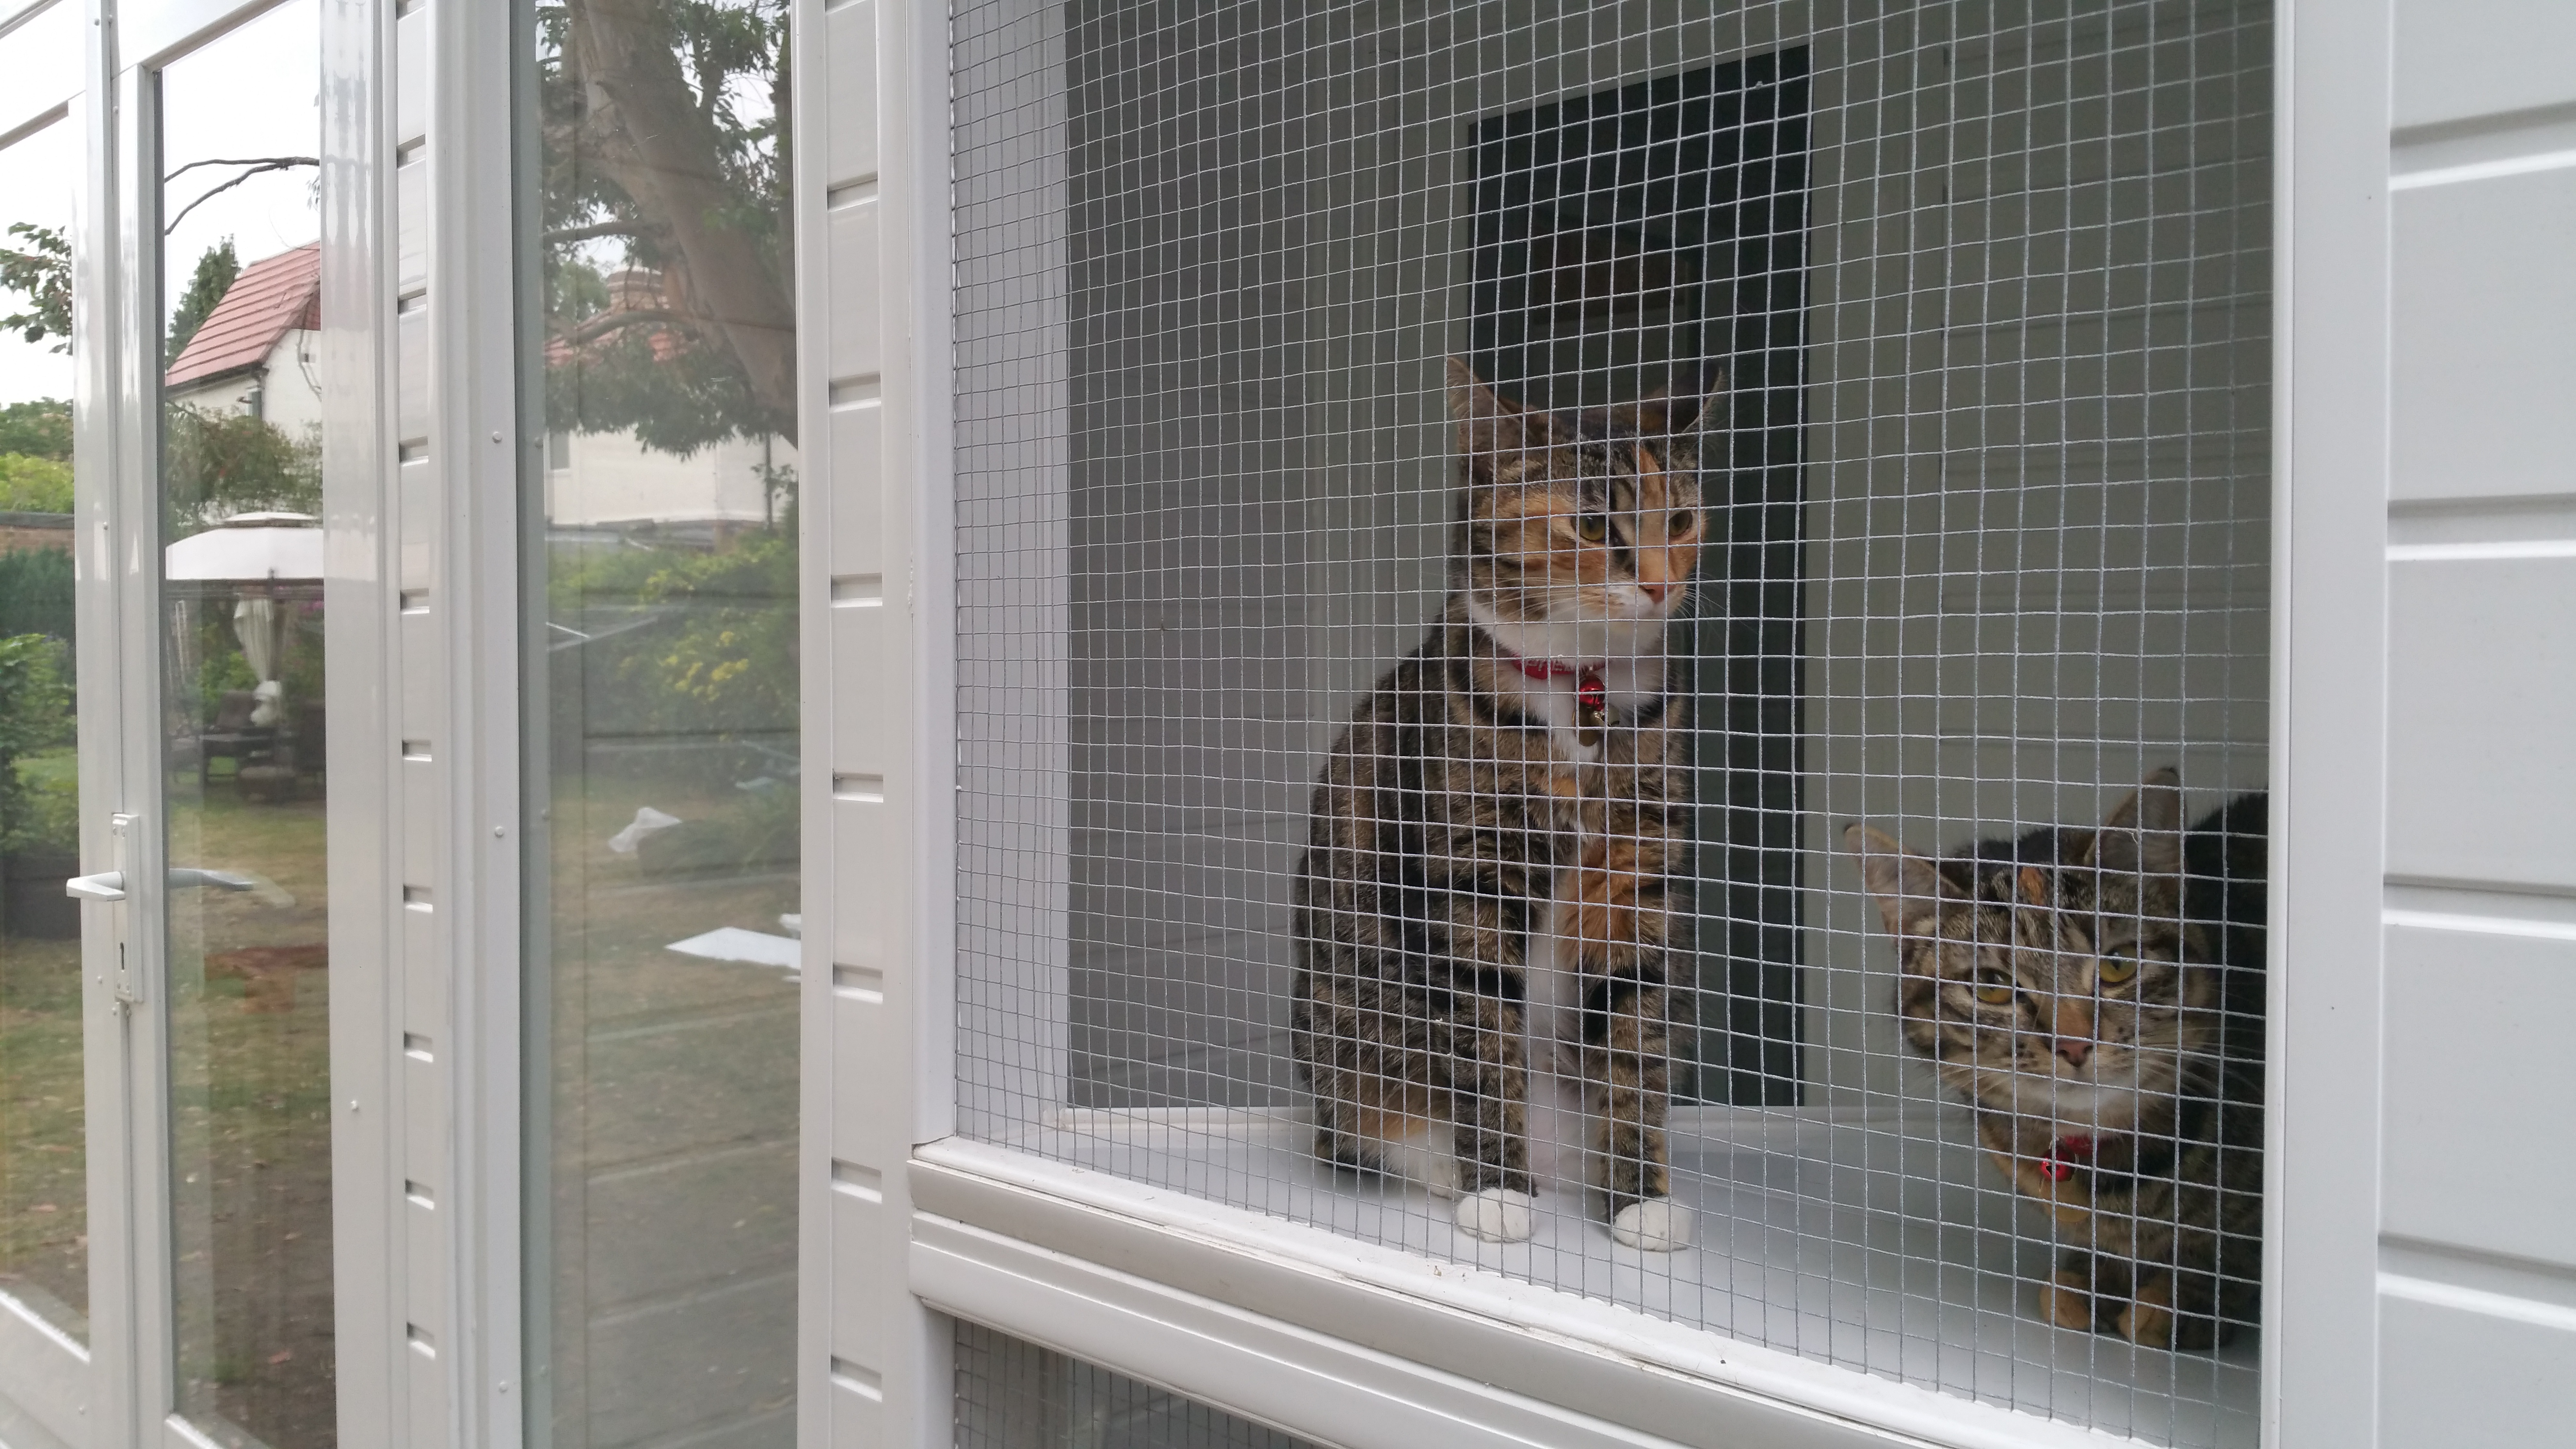 Cats in the pen